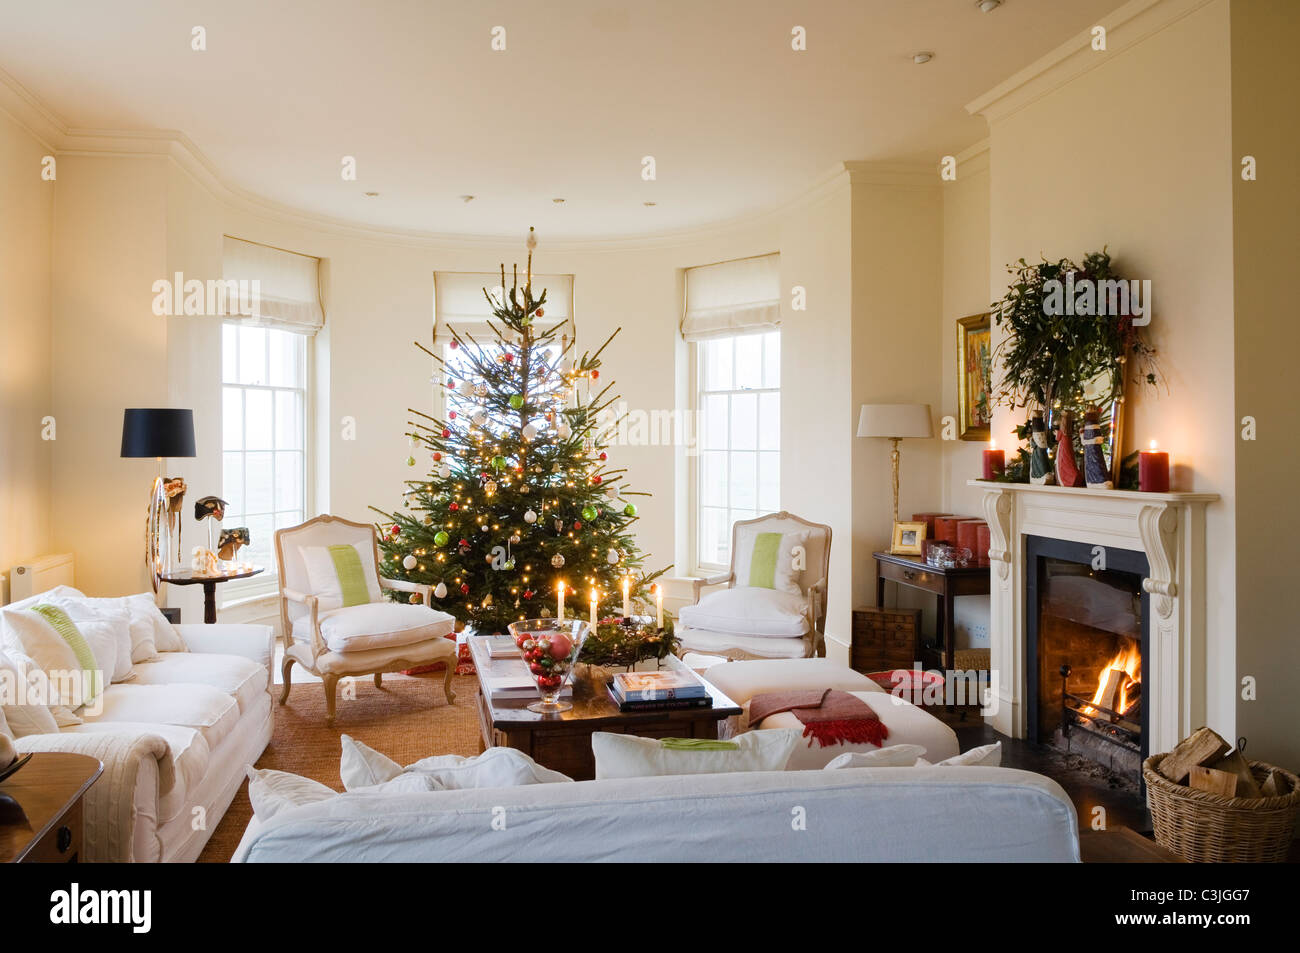 Christmas tree decorated with baubles in regency living room with armchairs and fireplace - Stock Image